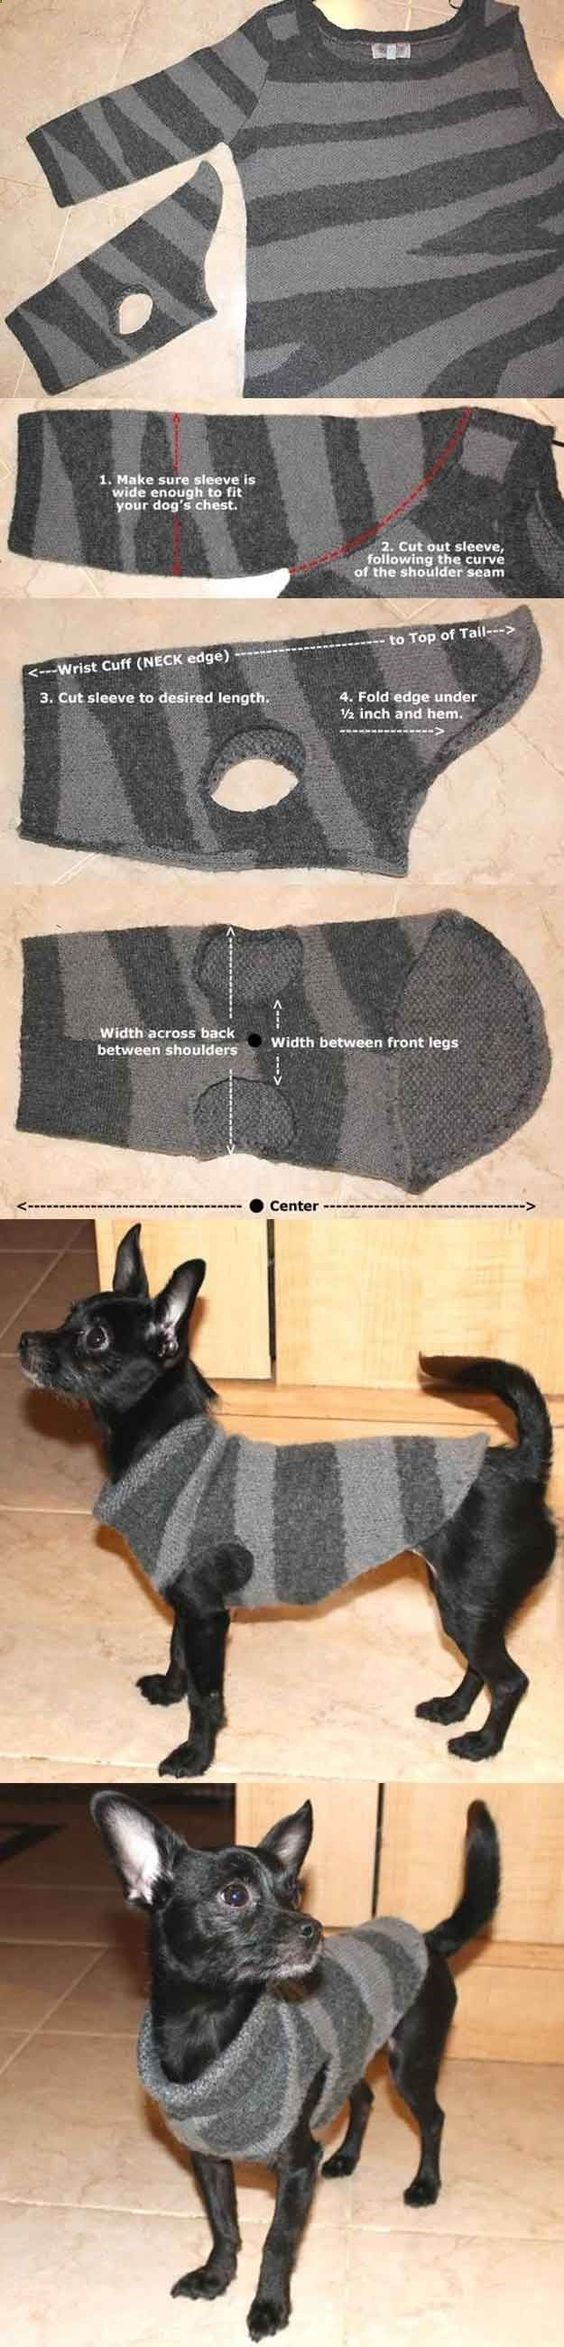 Upcycled Dog Sweater - 12 DIY Dog Clothes and Coats   How To Make Cute Outfits For Your Furry Pet by DIY Ready at diyready.com/...